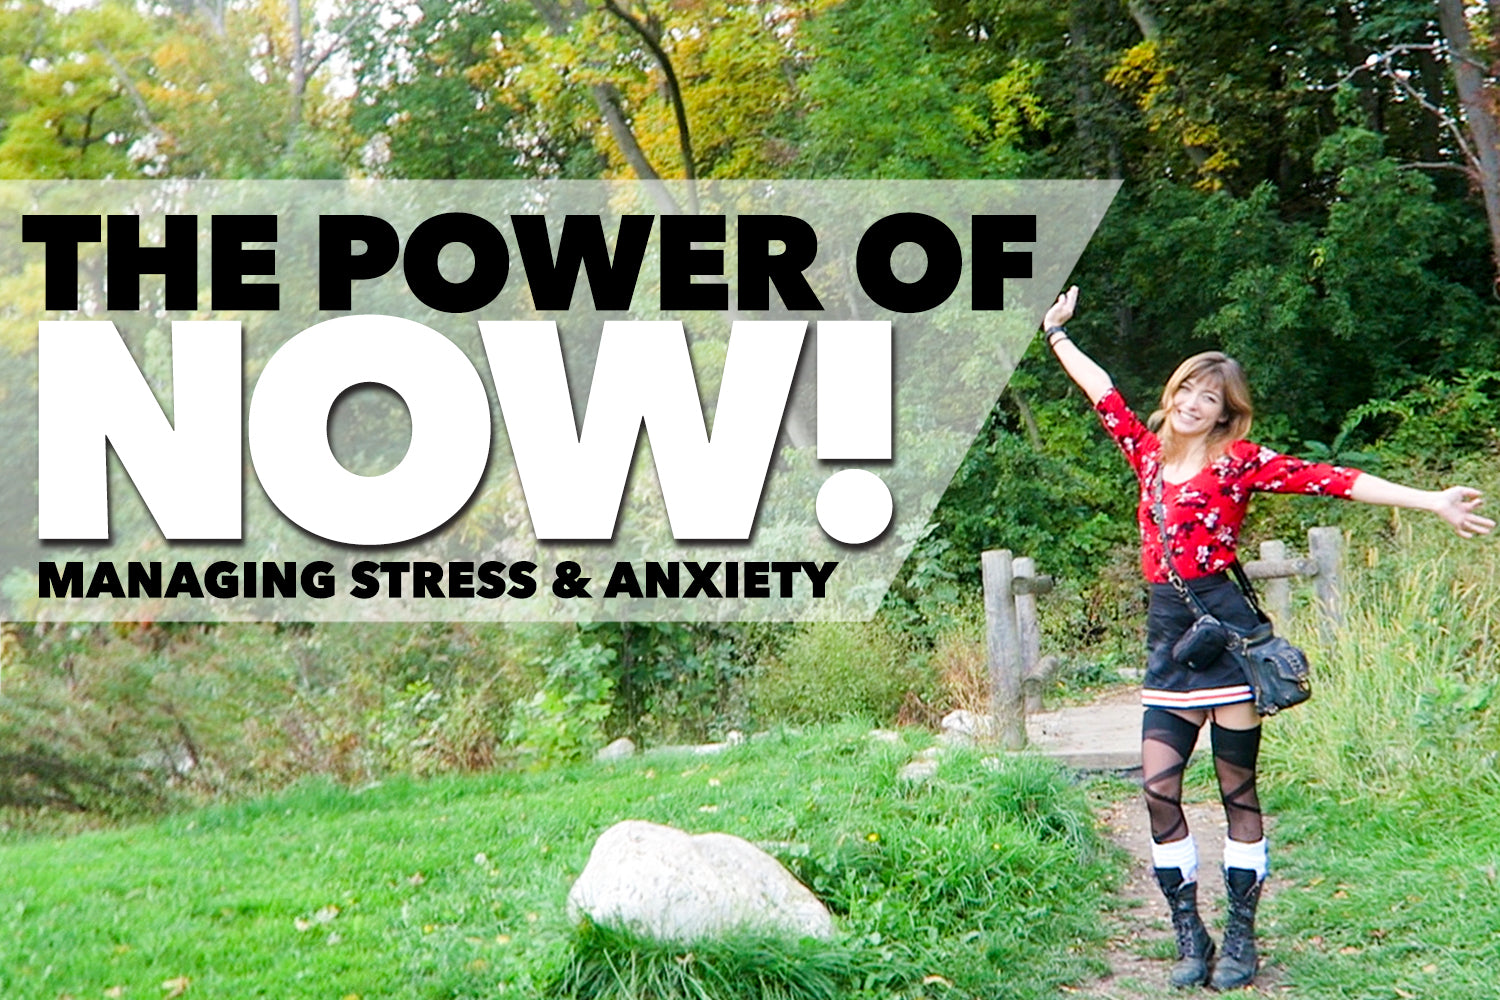 Crush-Fitness-Power-Of-Now-Stress-Anxiety